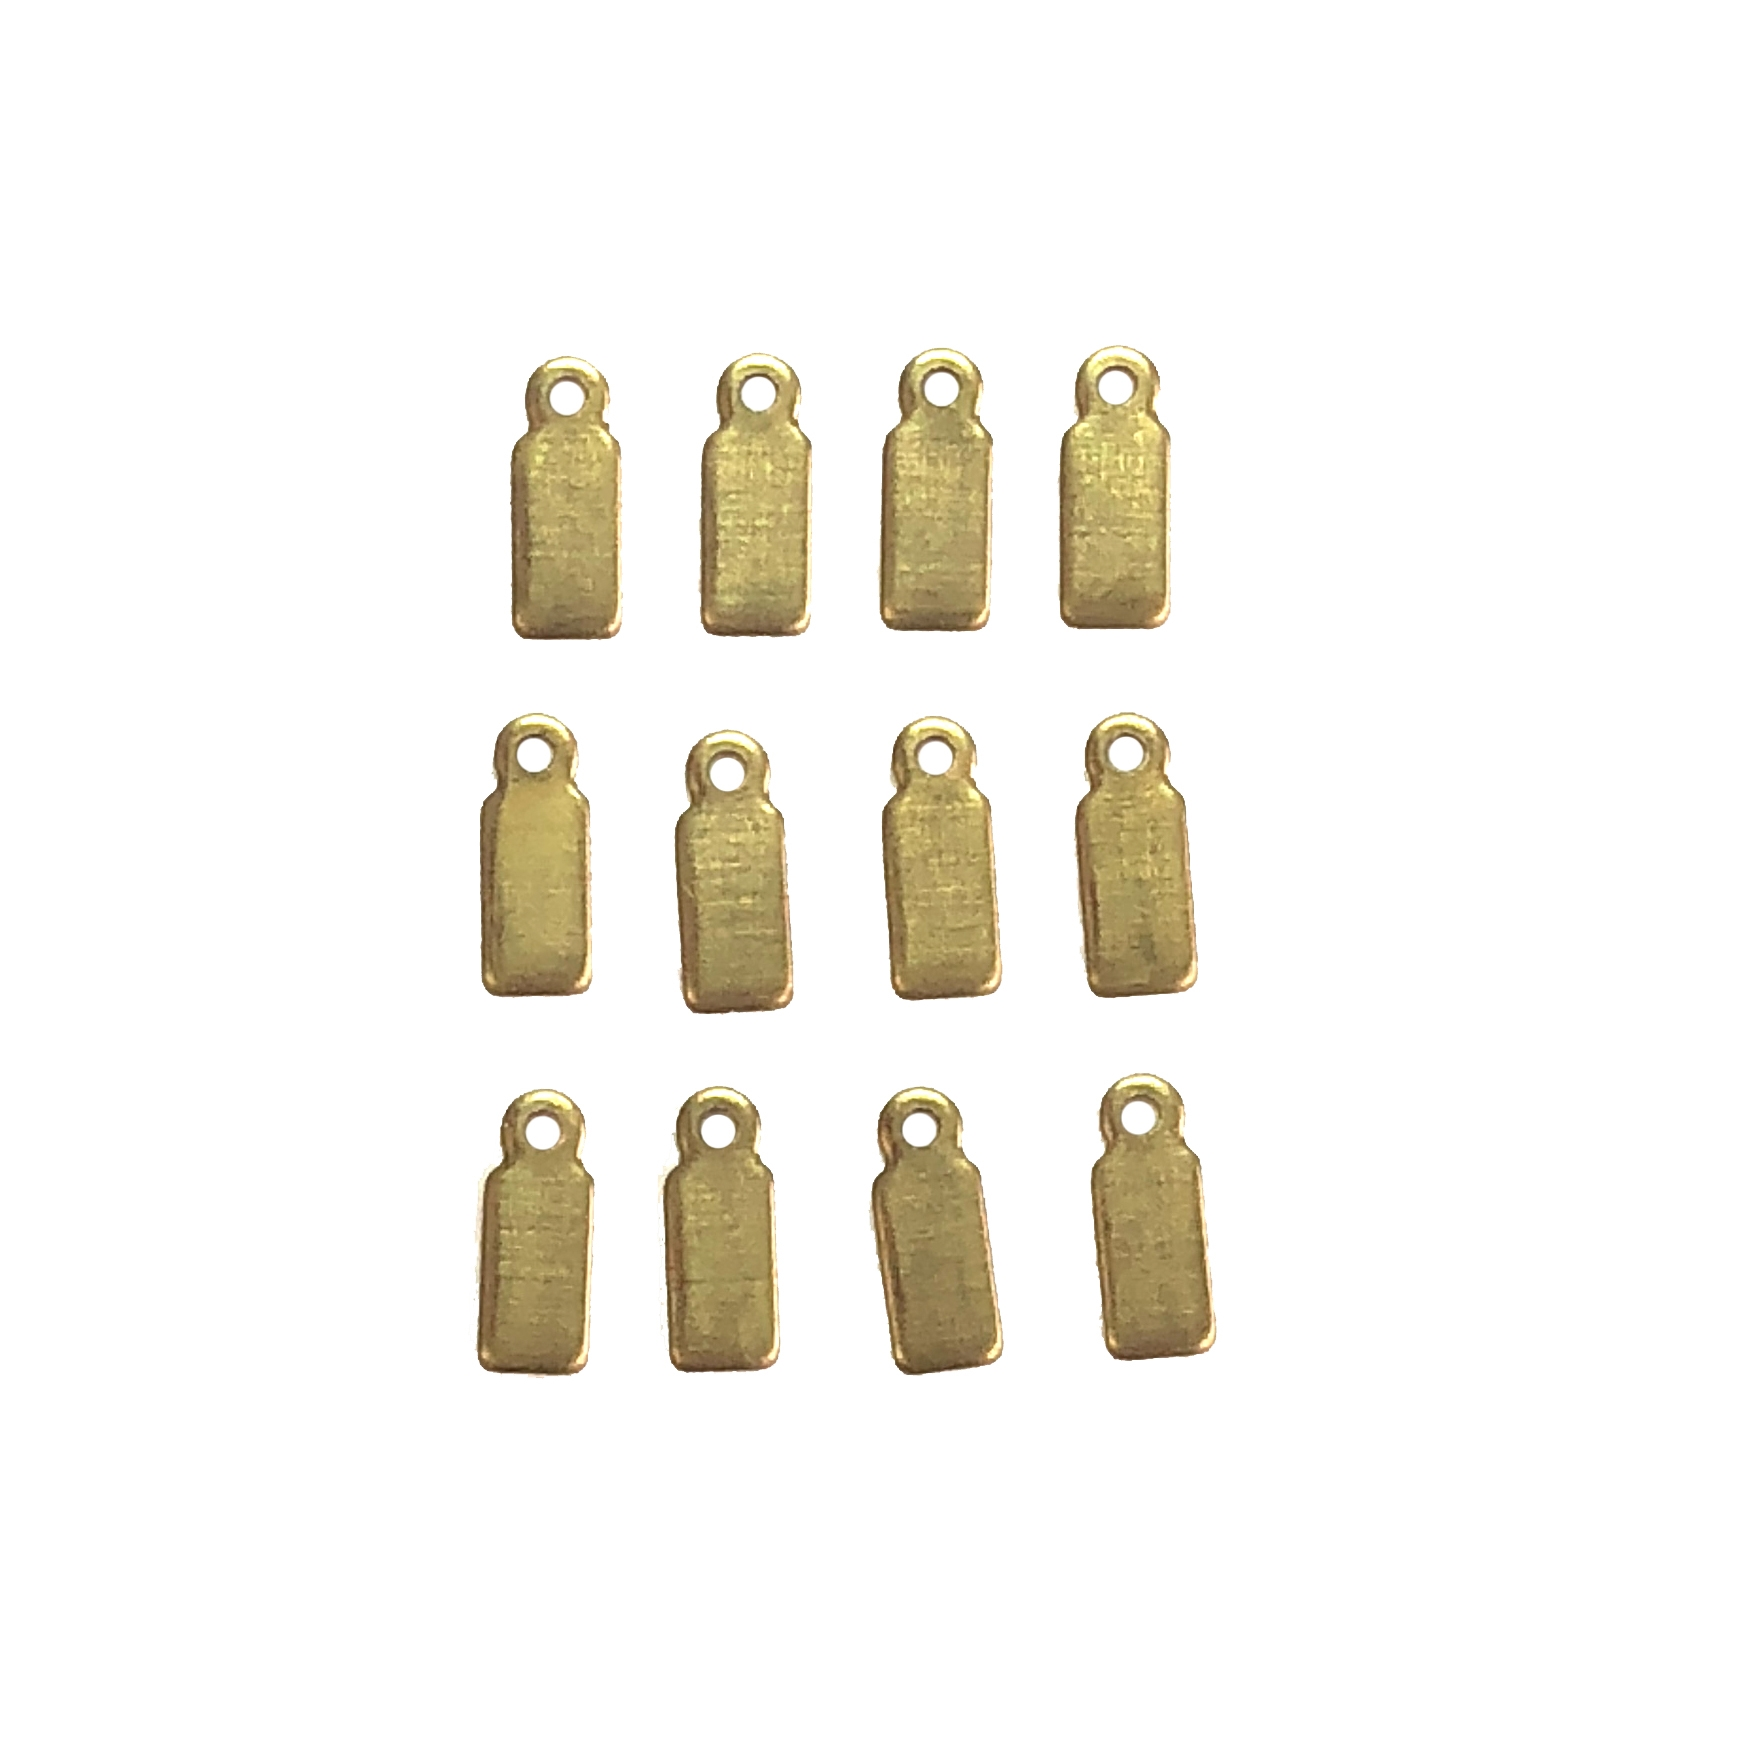 Brass Blank, tiny tags, 08365, blanks, tags, raw brass, unplated brass, charm, drop, ear drop, charms, drops, brass drop, Bsue Boutiques, jewelry supplies, findings, 12 x 3mm